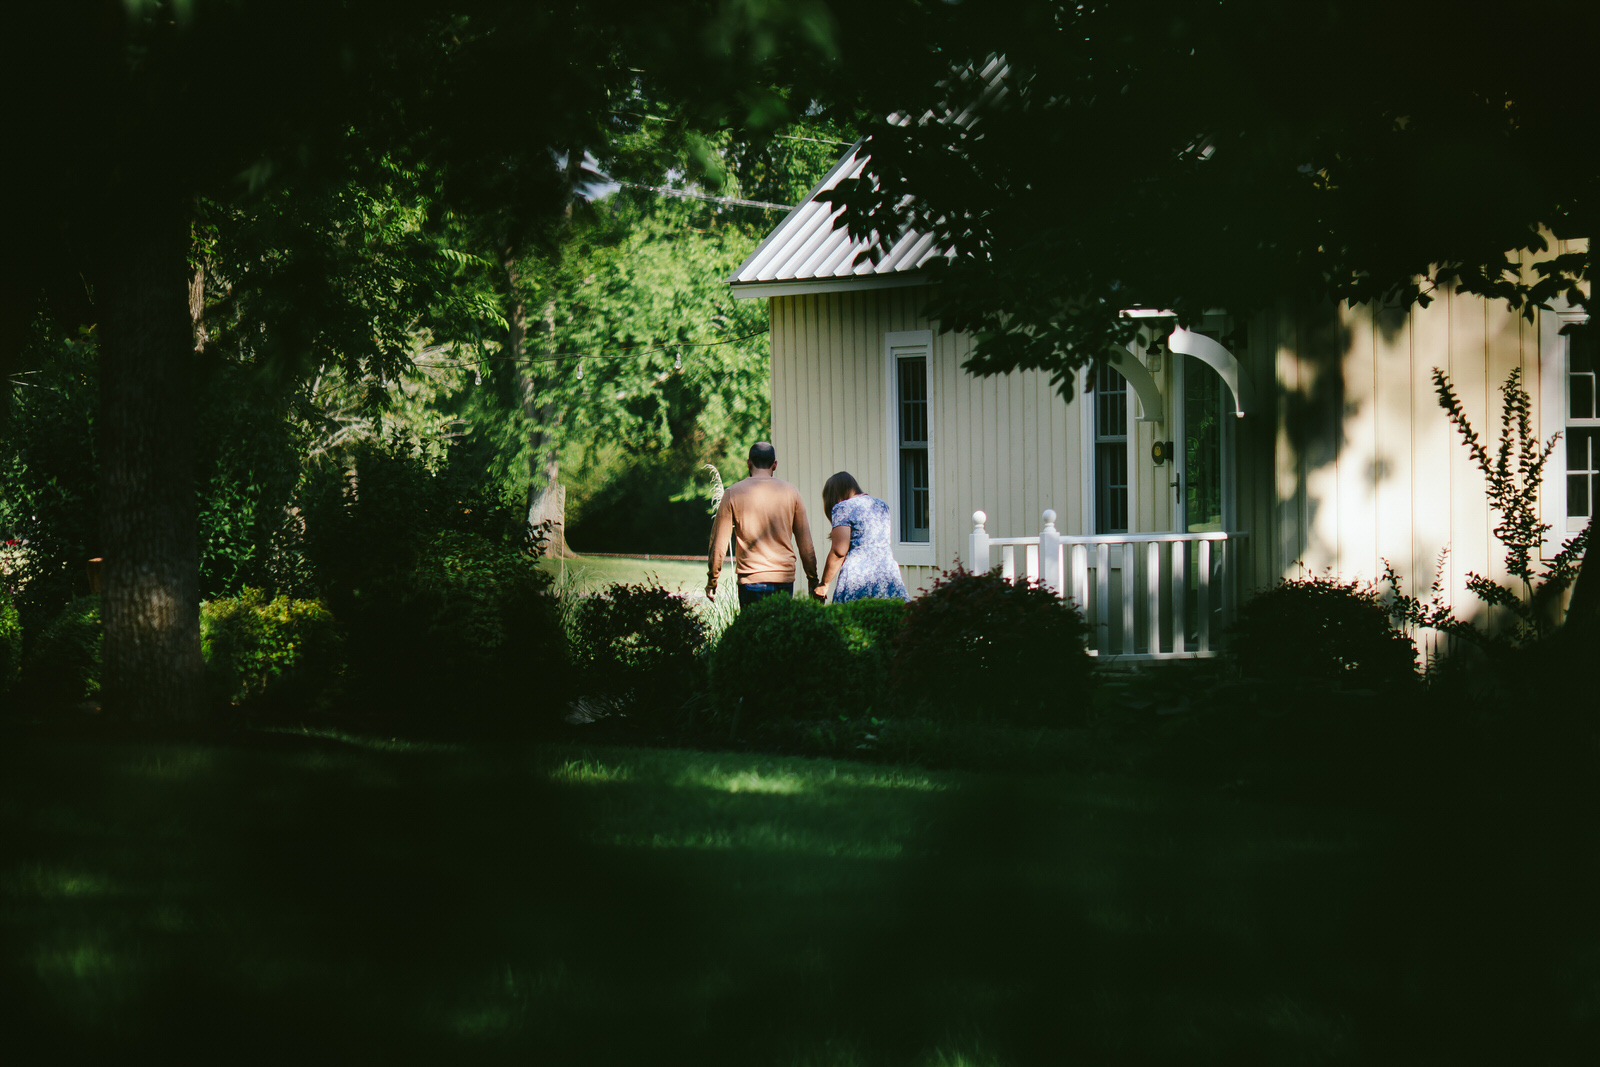 nashville-backyard-proposal-engagement-portraits-tiny-house-photo.jpg